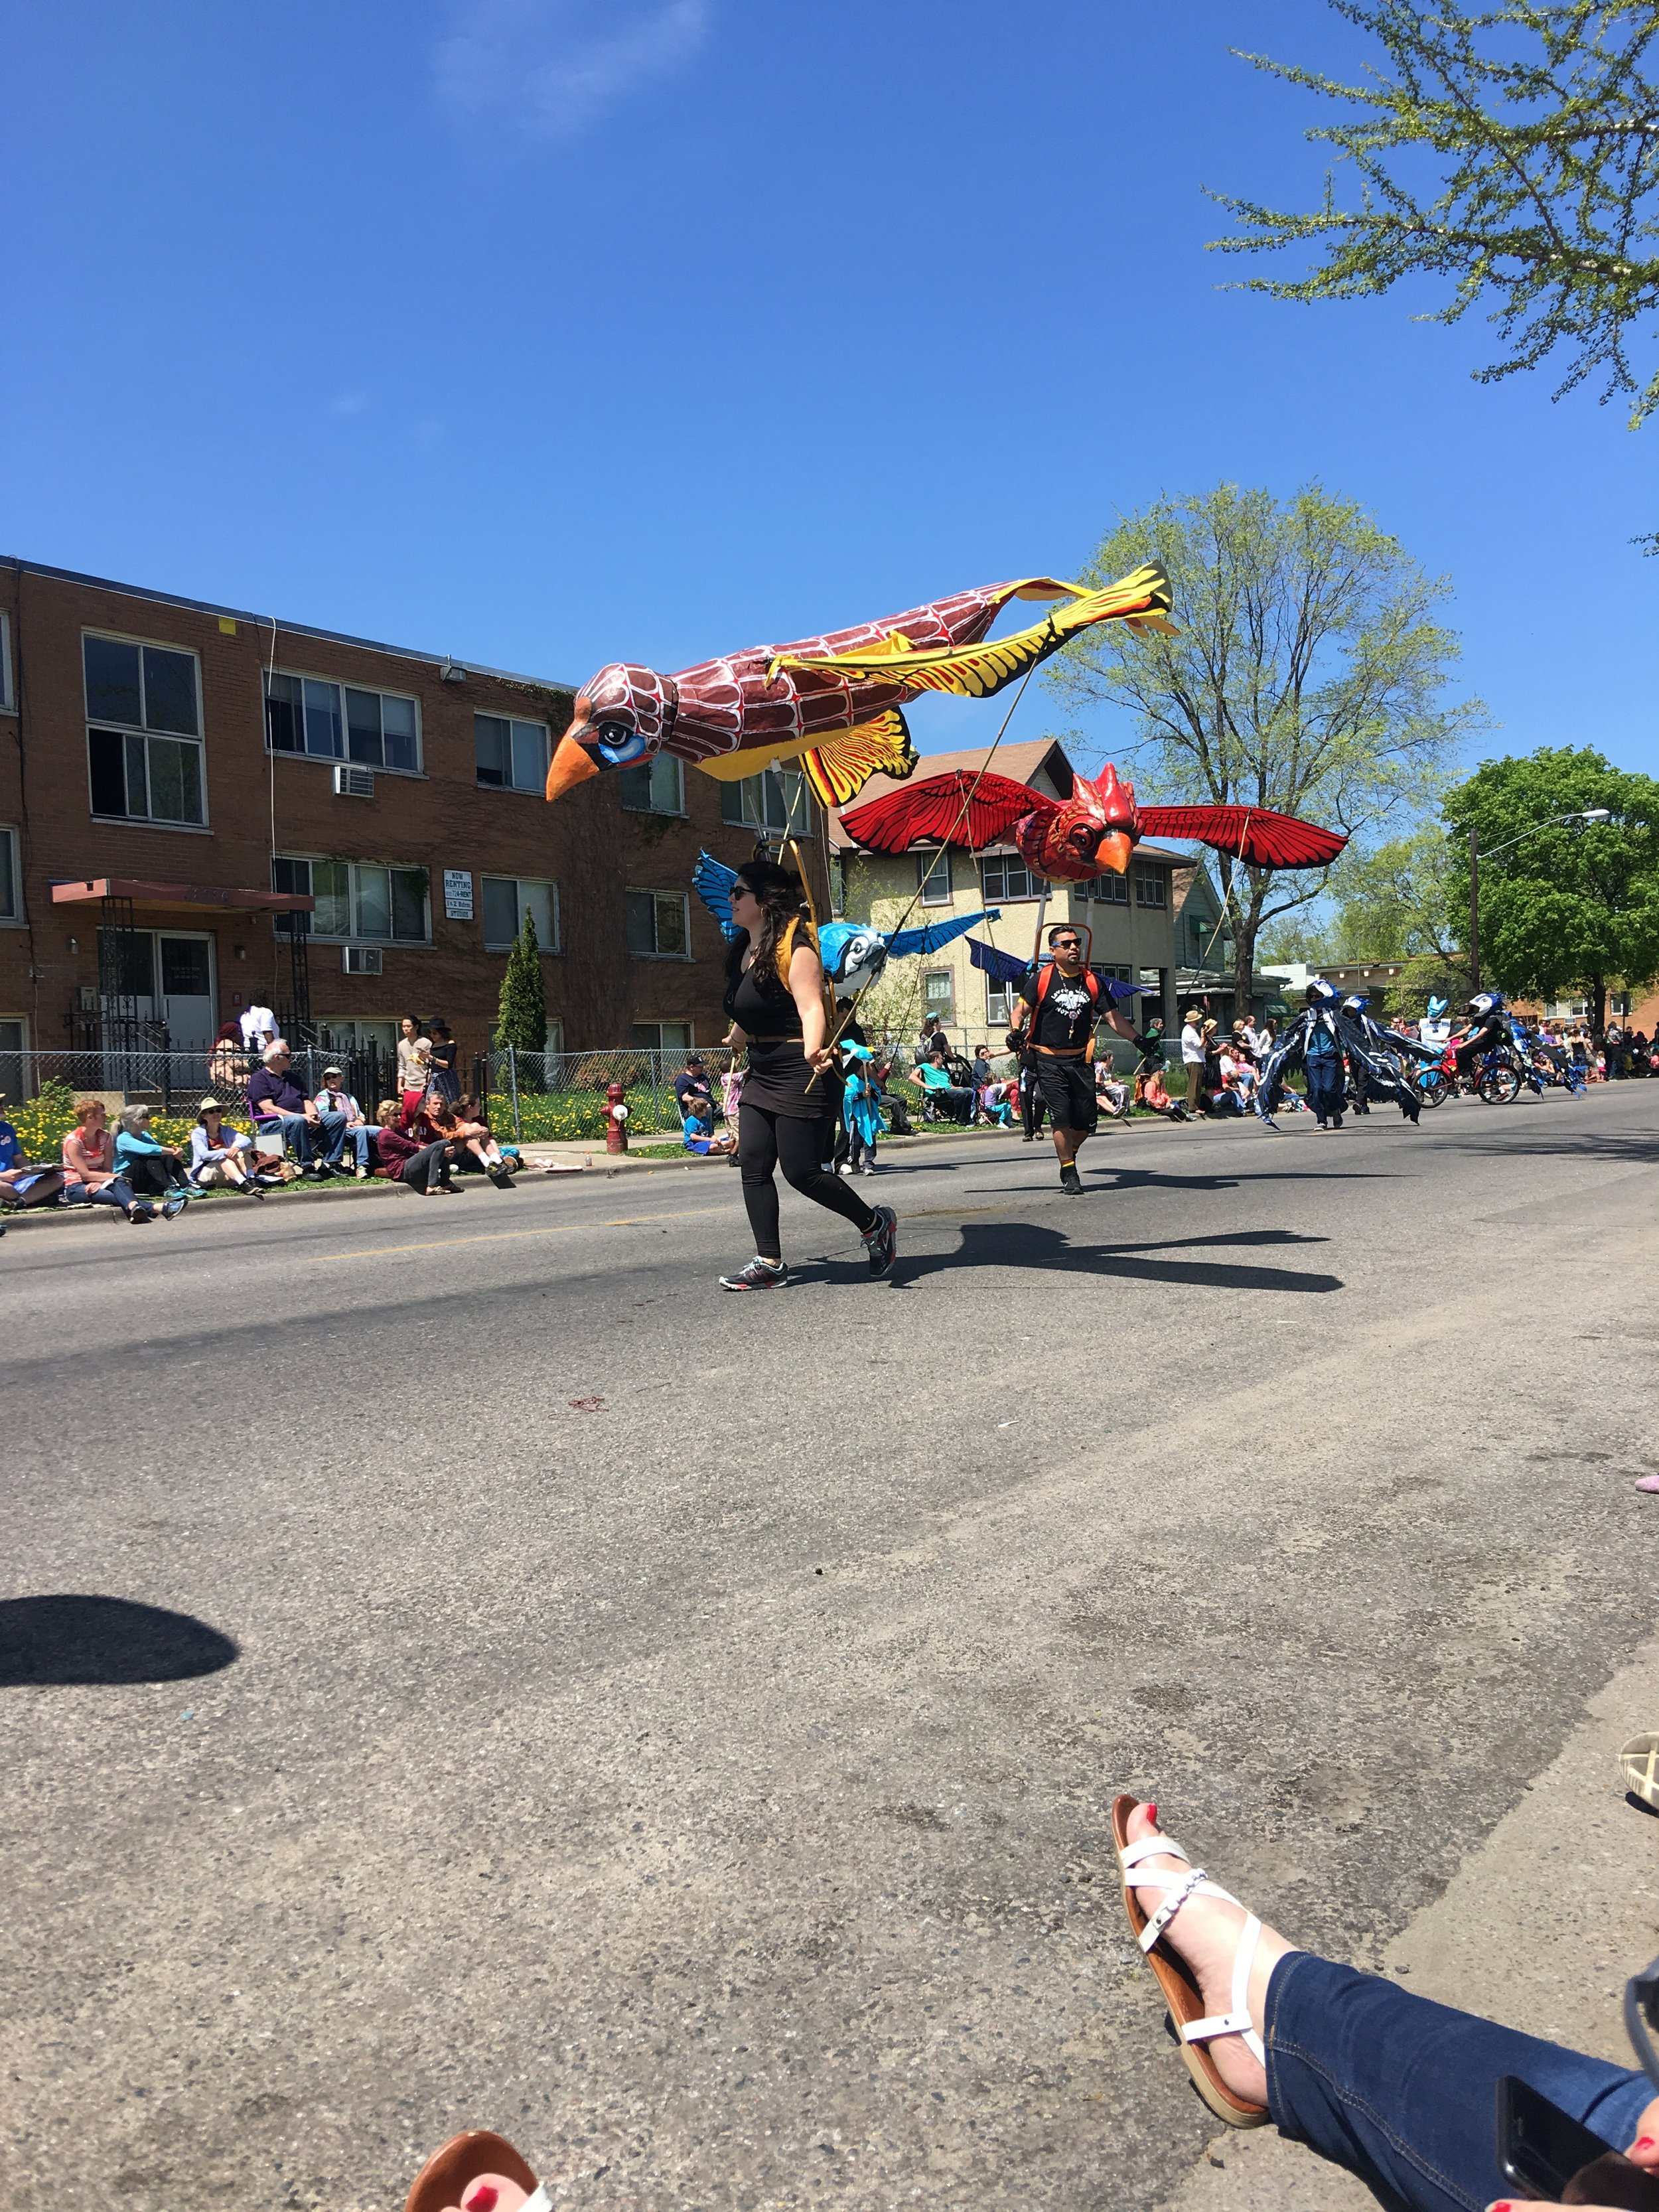 Flying birds winding throughout the parade